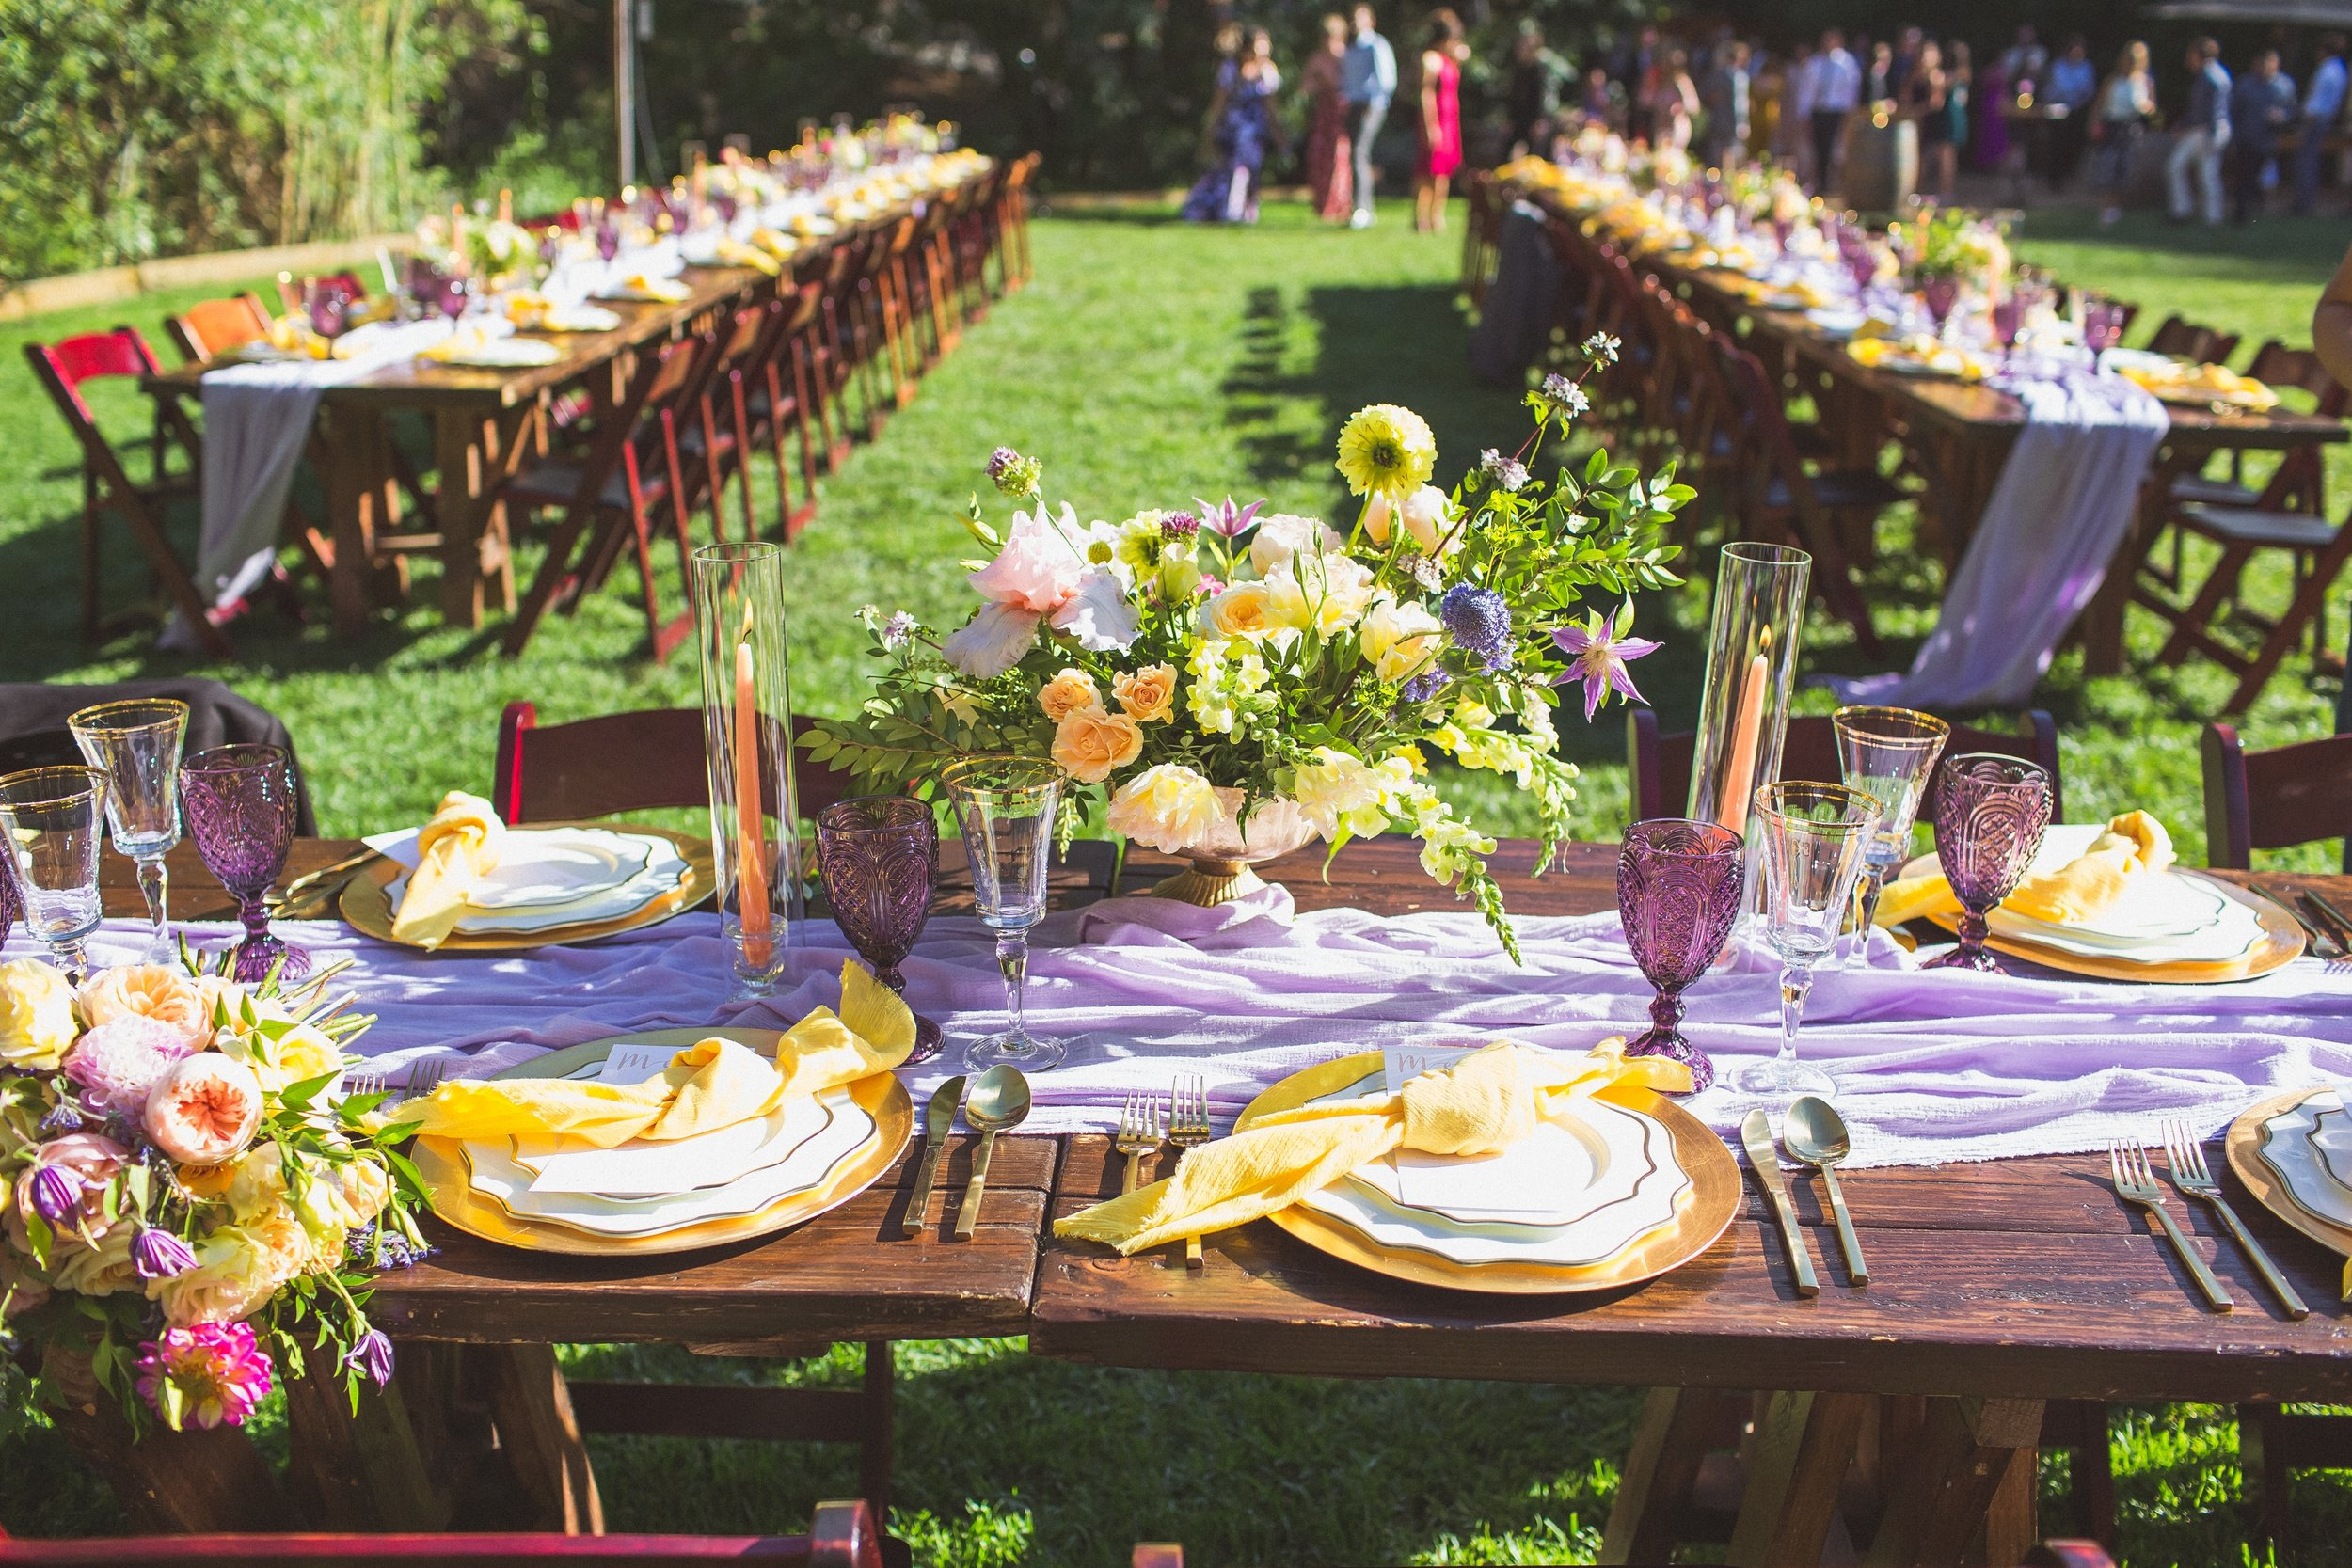 Lilly & James' Head Table